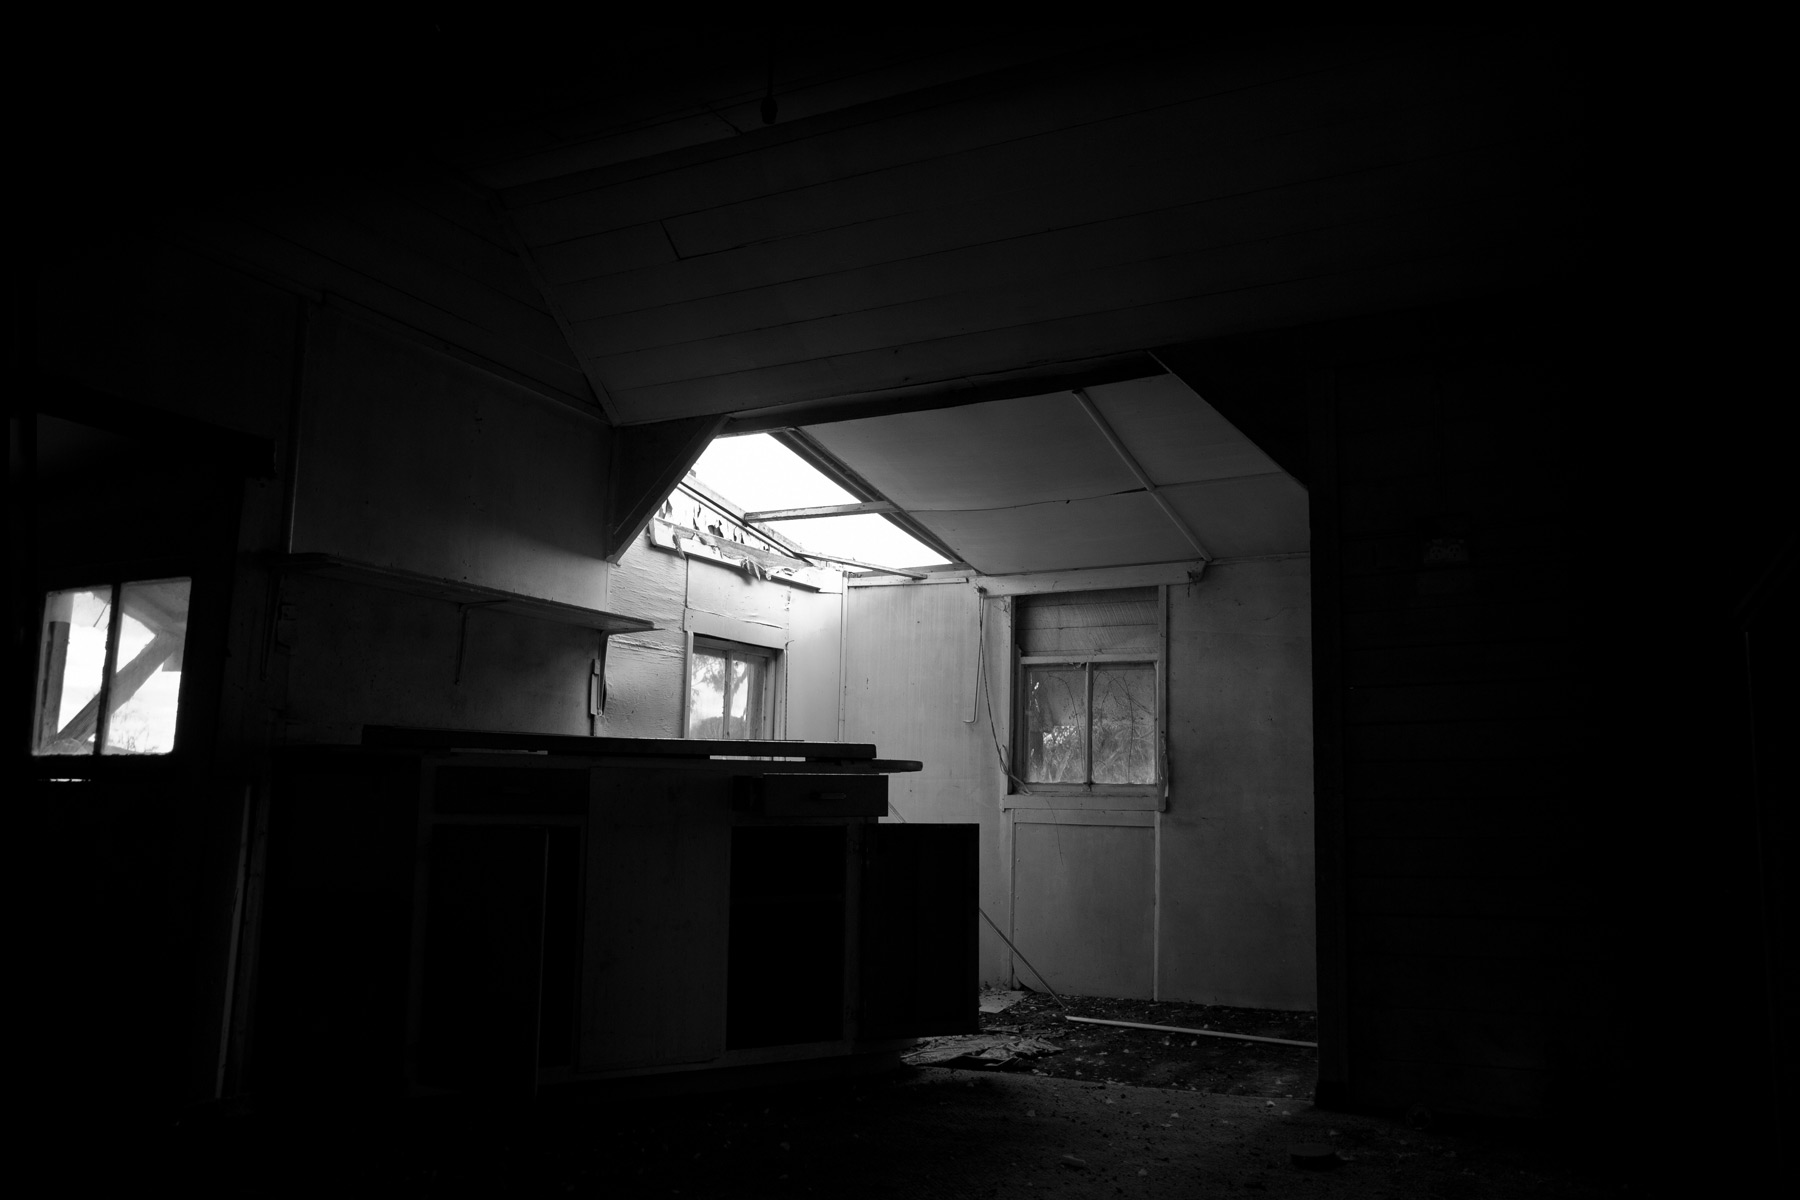 Light coming through a hole in the roof of an abandoned house in Acland